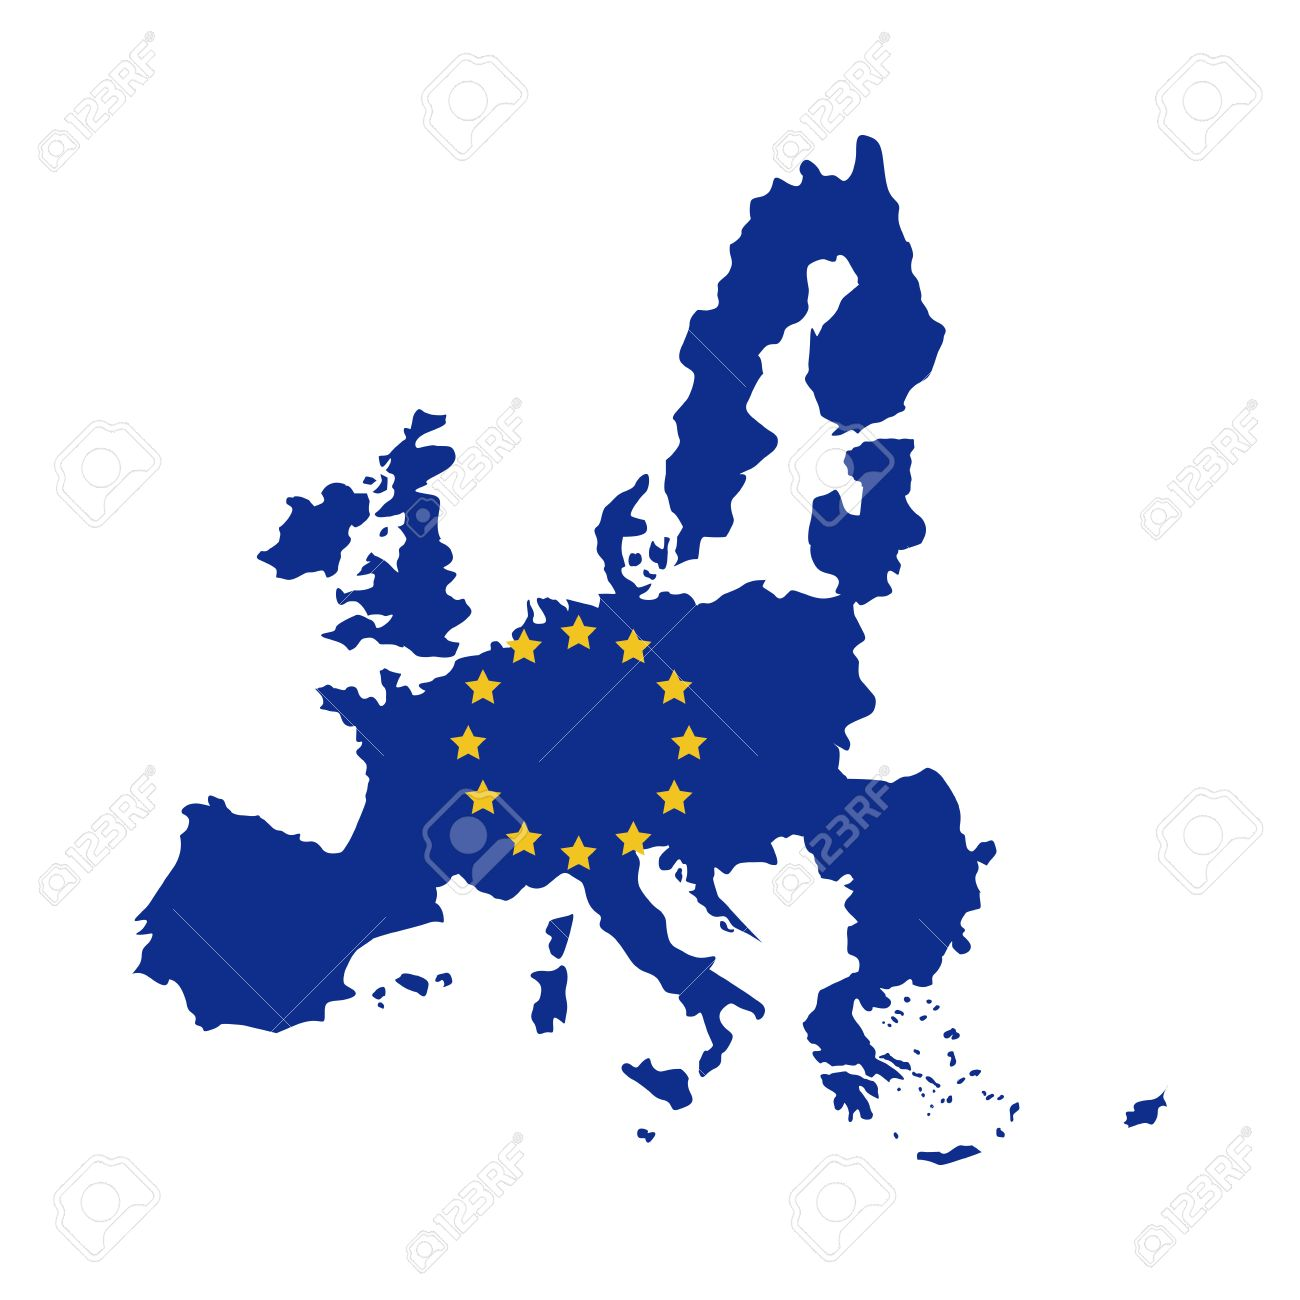 European union map icon. Europe eu country national and politics theme.  Isolated design.